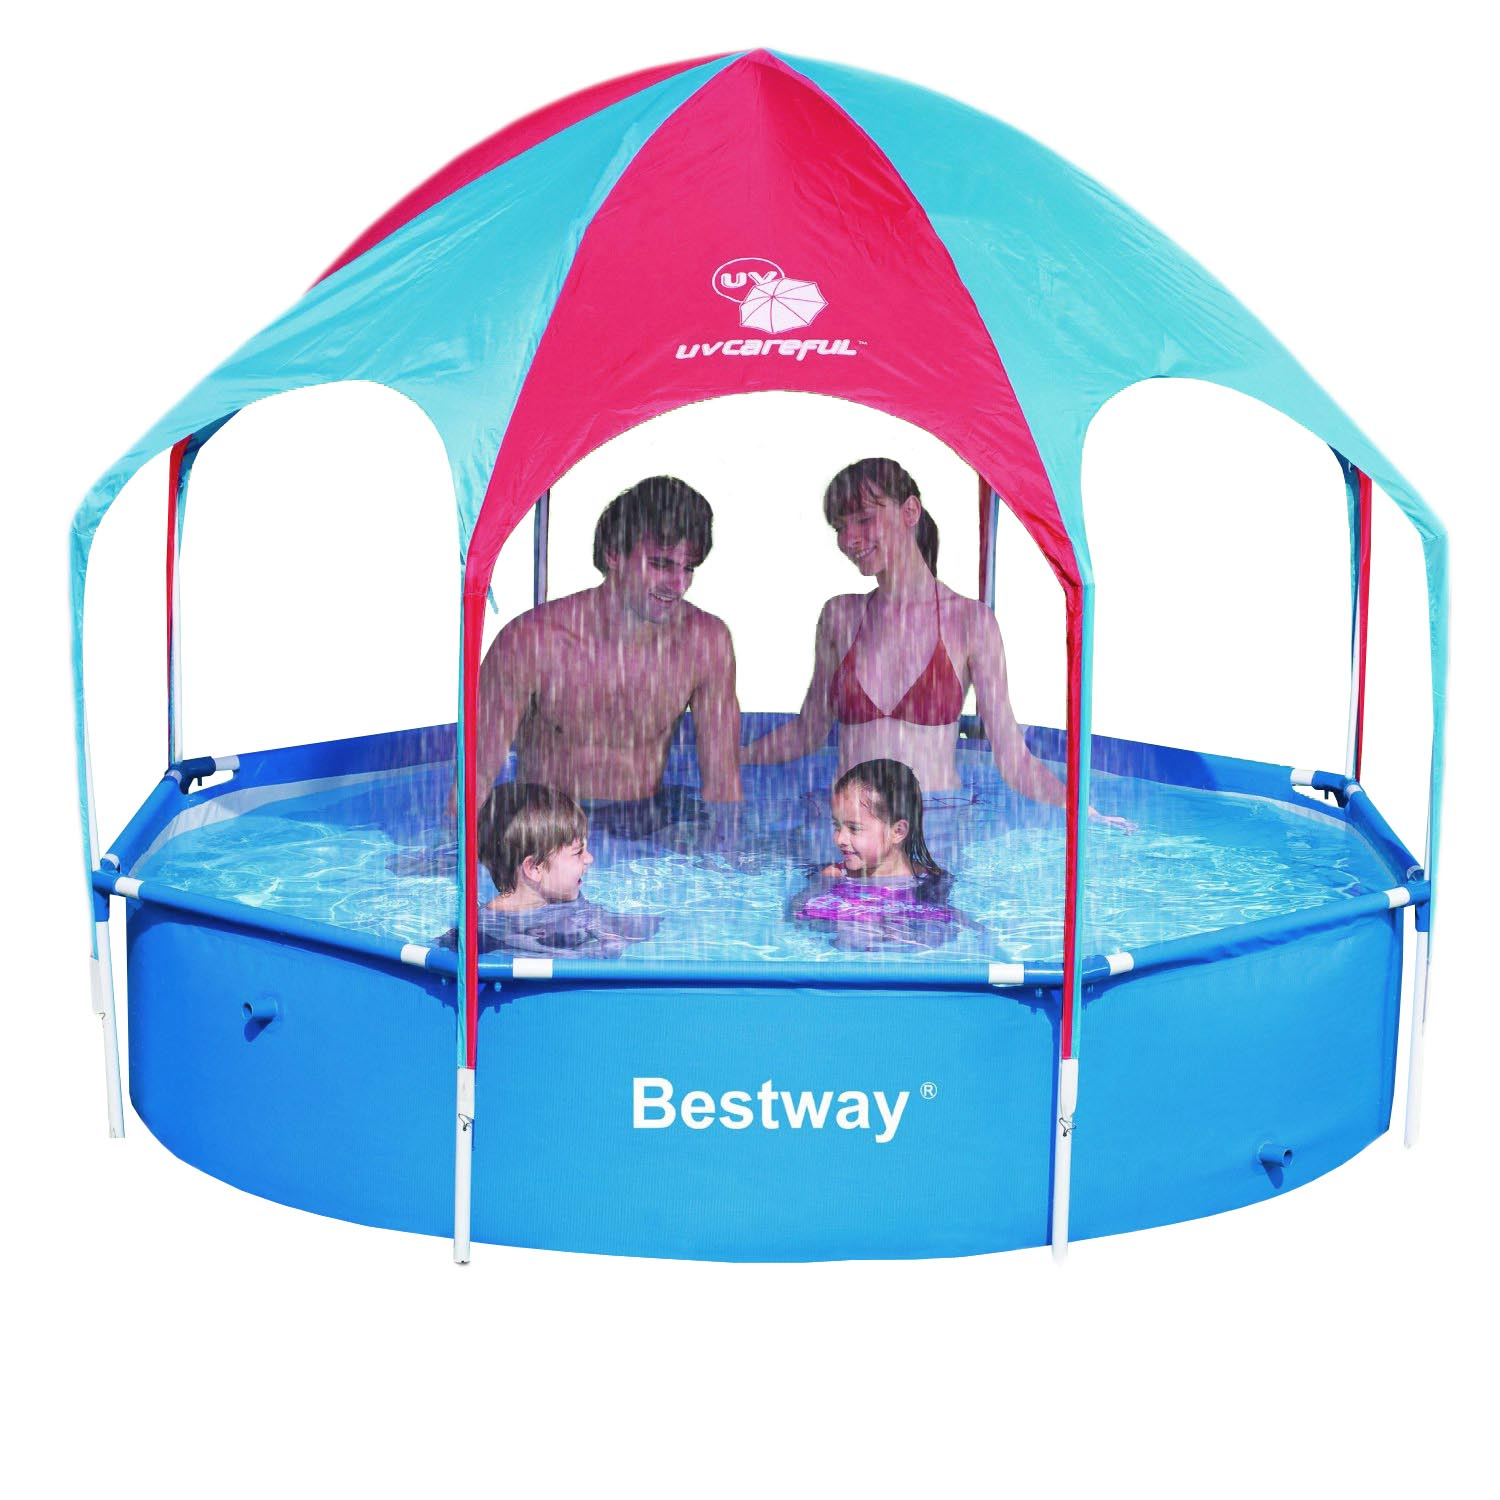 bestway planschbecken mit sonnendach sprinkler family pool. Black Bedroom Furniture Sets. Home Design Ideas